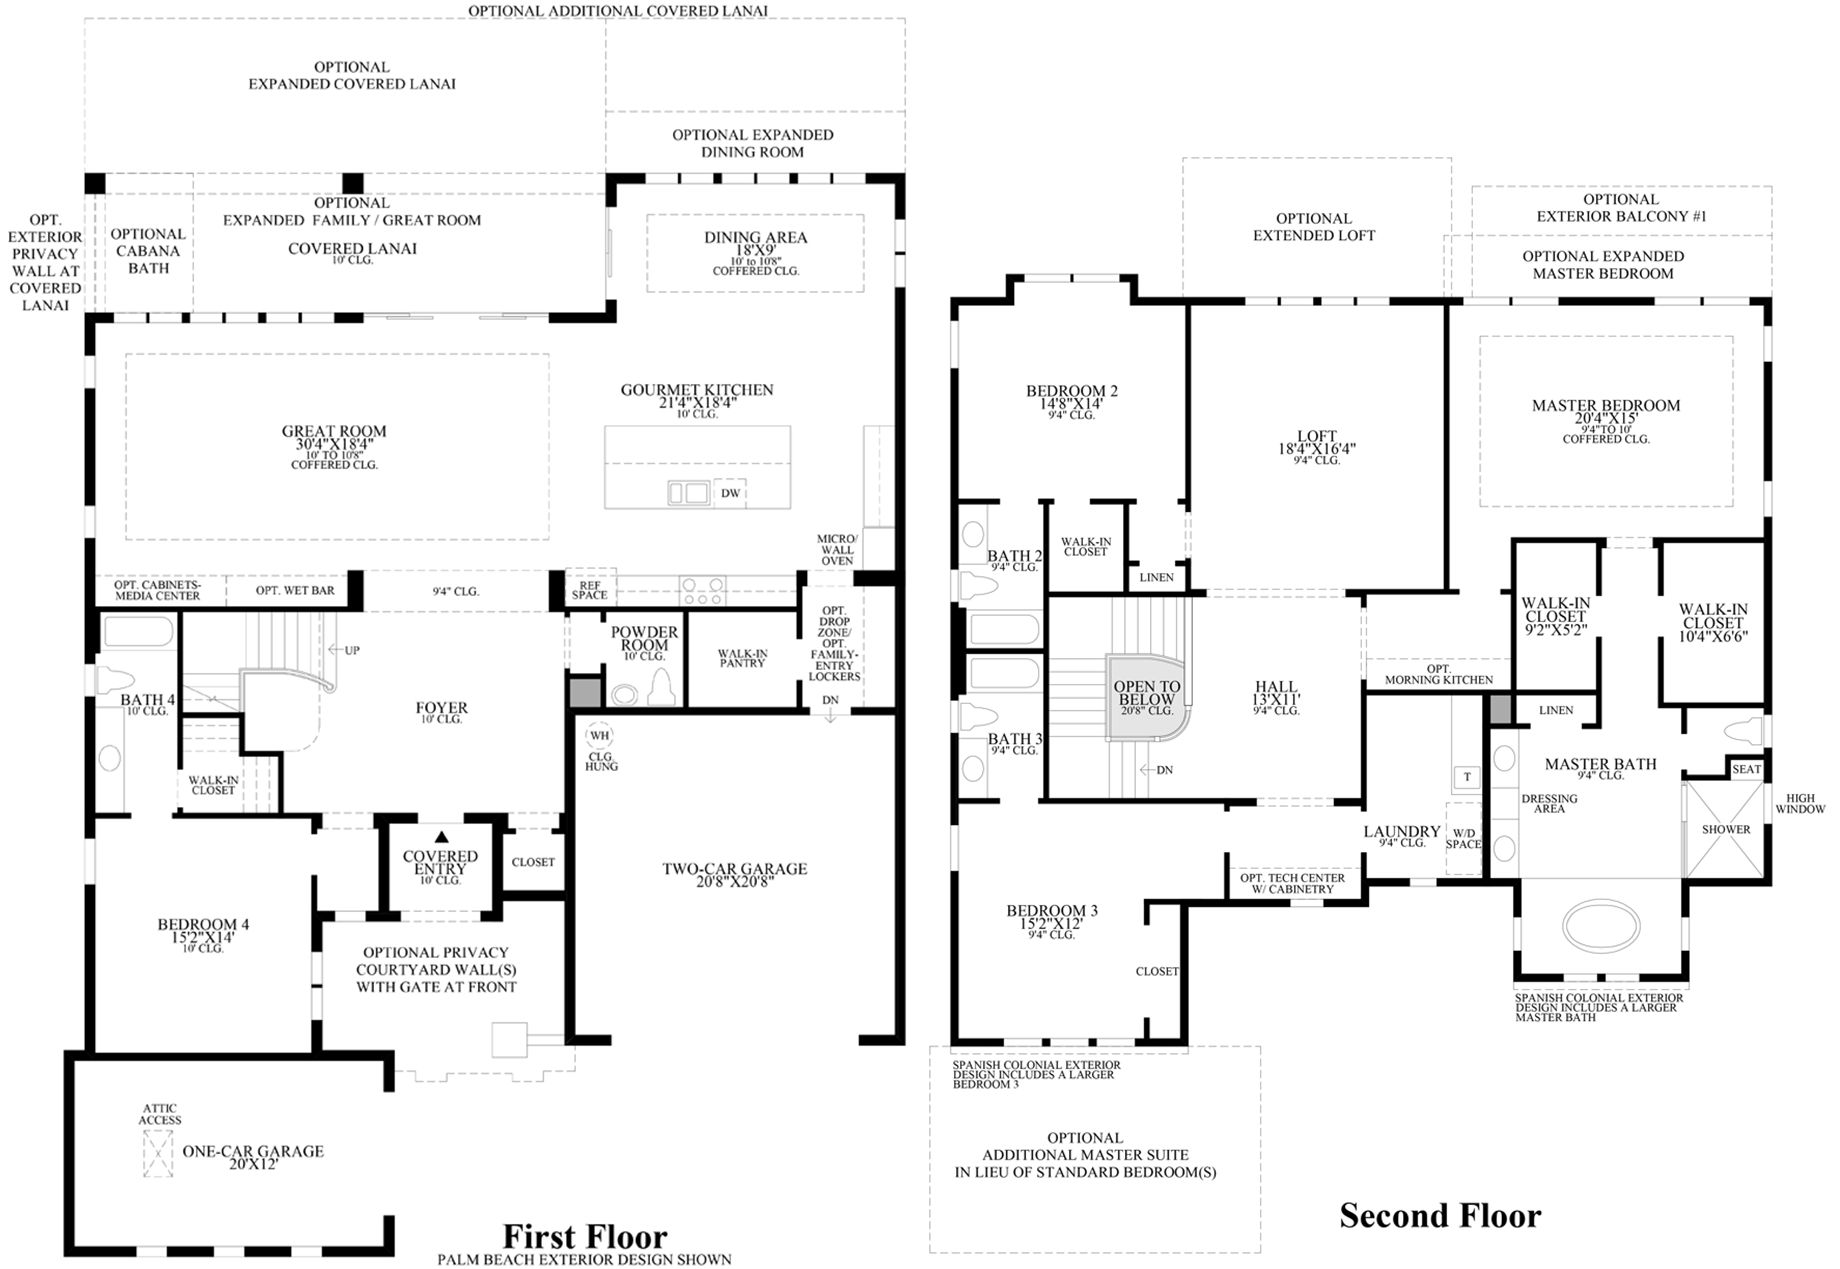 Pretty toll brothers floor plans pictures floorplan for mirador at windgate ranch scottsdale - Dream home floor plan model ...